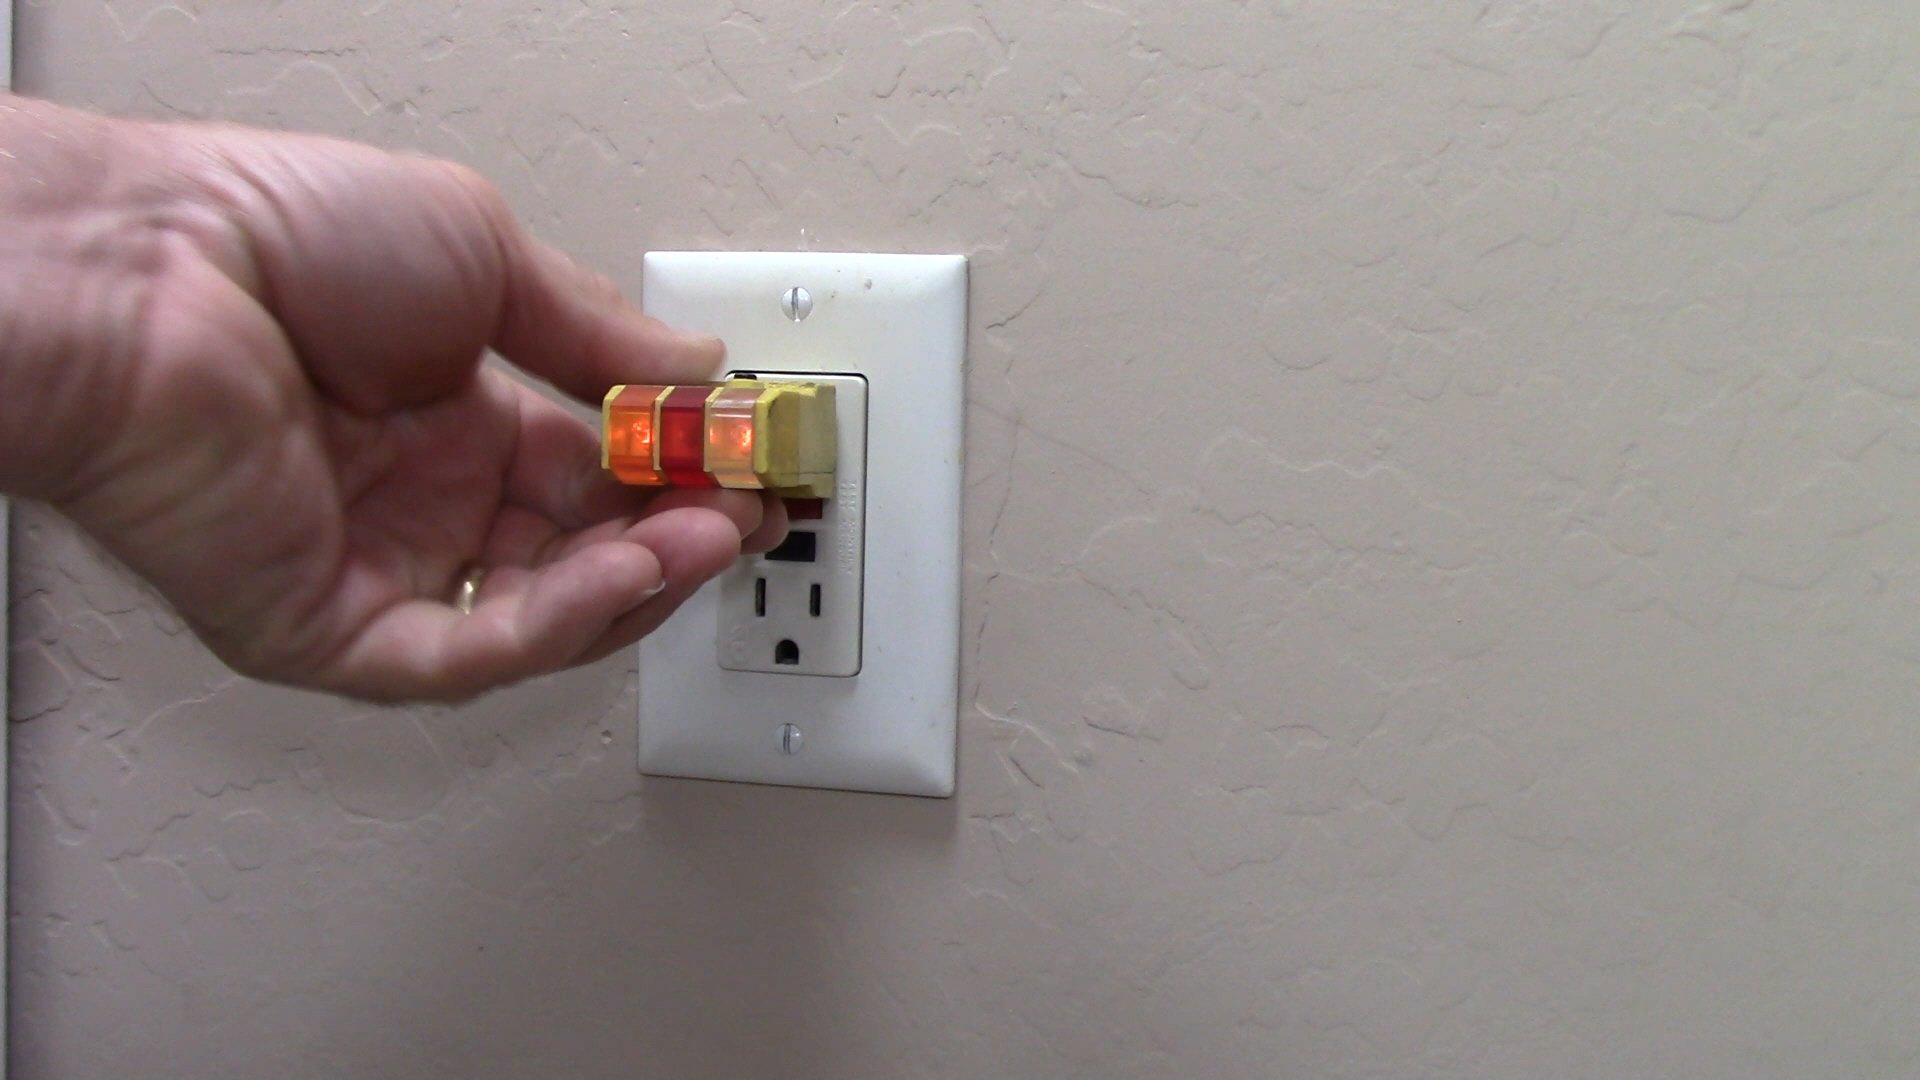 How To Replace A Faulty Gfci Receptacle Electrical Online Wiring In The Home Replaced Switch Outlet But